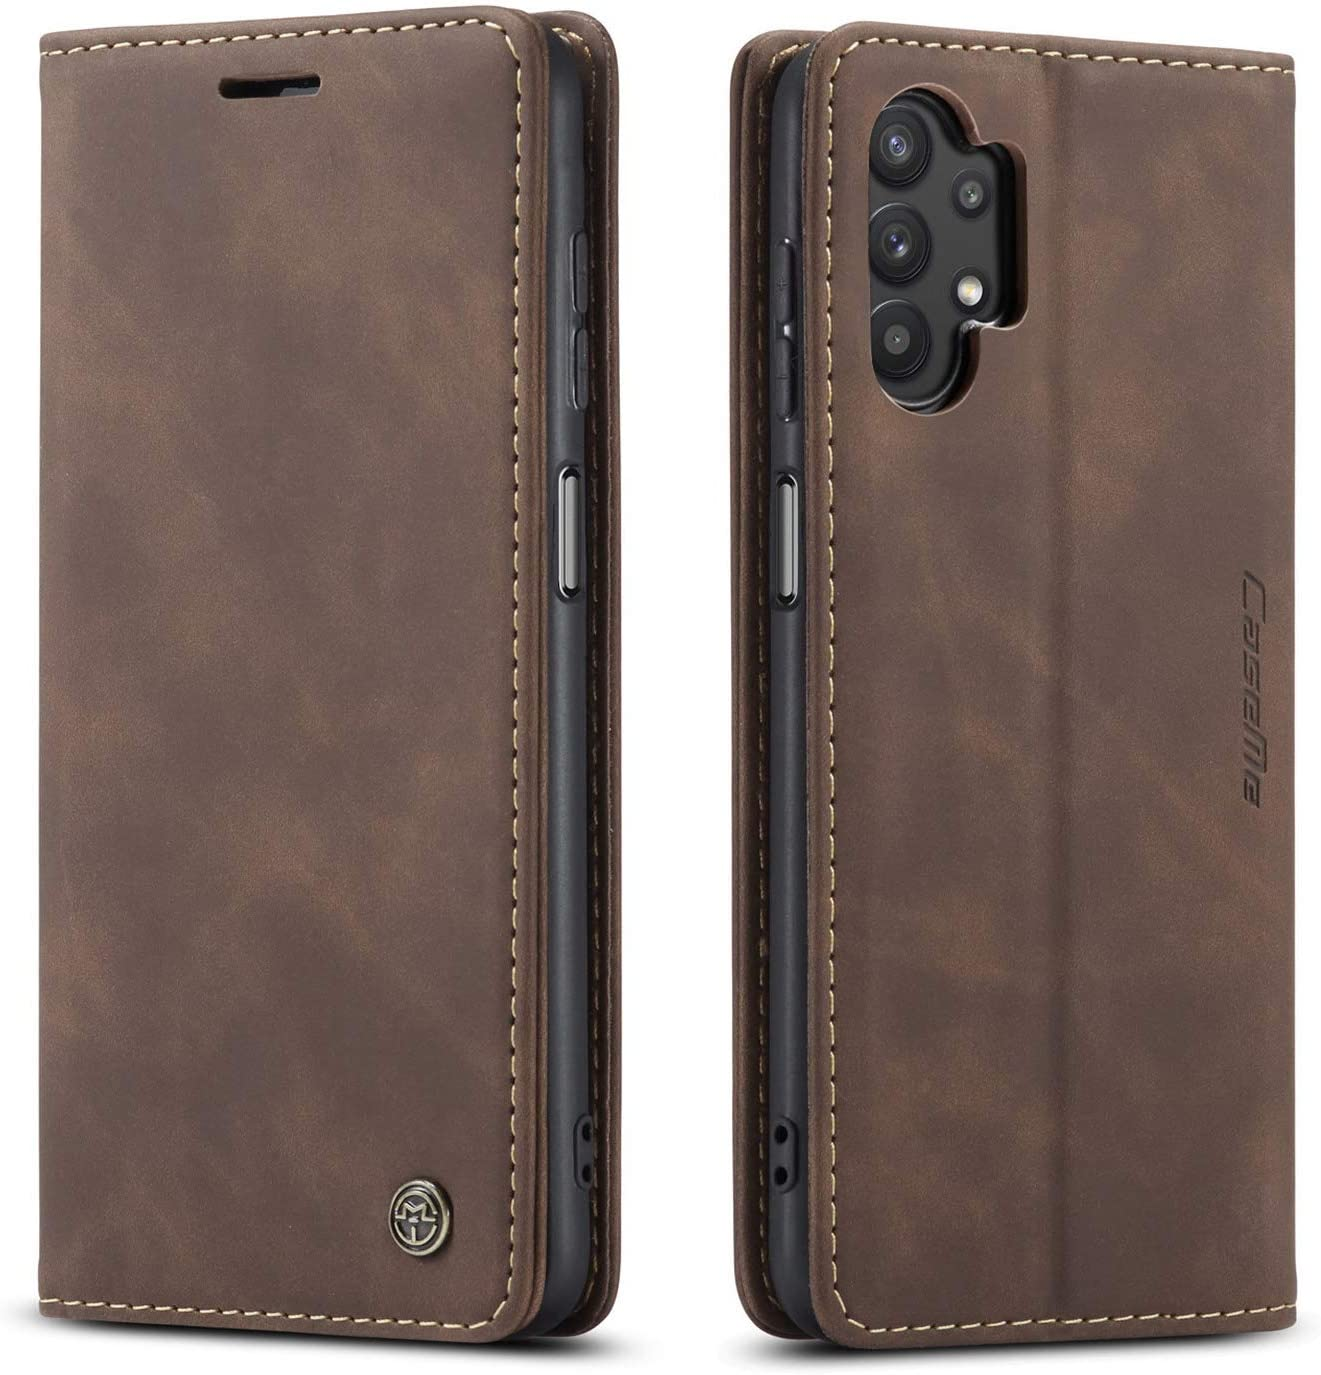 Kowauri Flip Case for Galaxy A32 4G [NOT Compatible with Galaxy A32 5G],Leather Wallet Case Classic Design with Card Slot and Magnetic Closure Flip Fold Case for Samsung Galaxy A32 4G (Coffee)